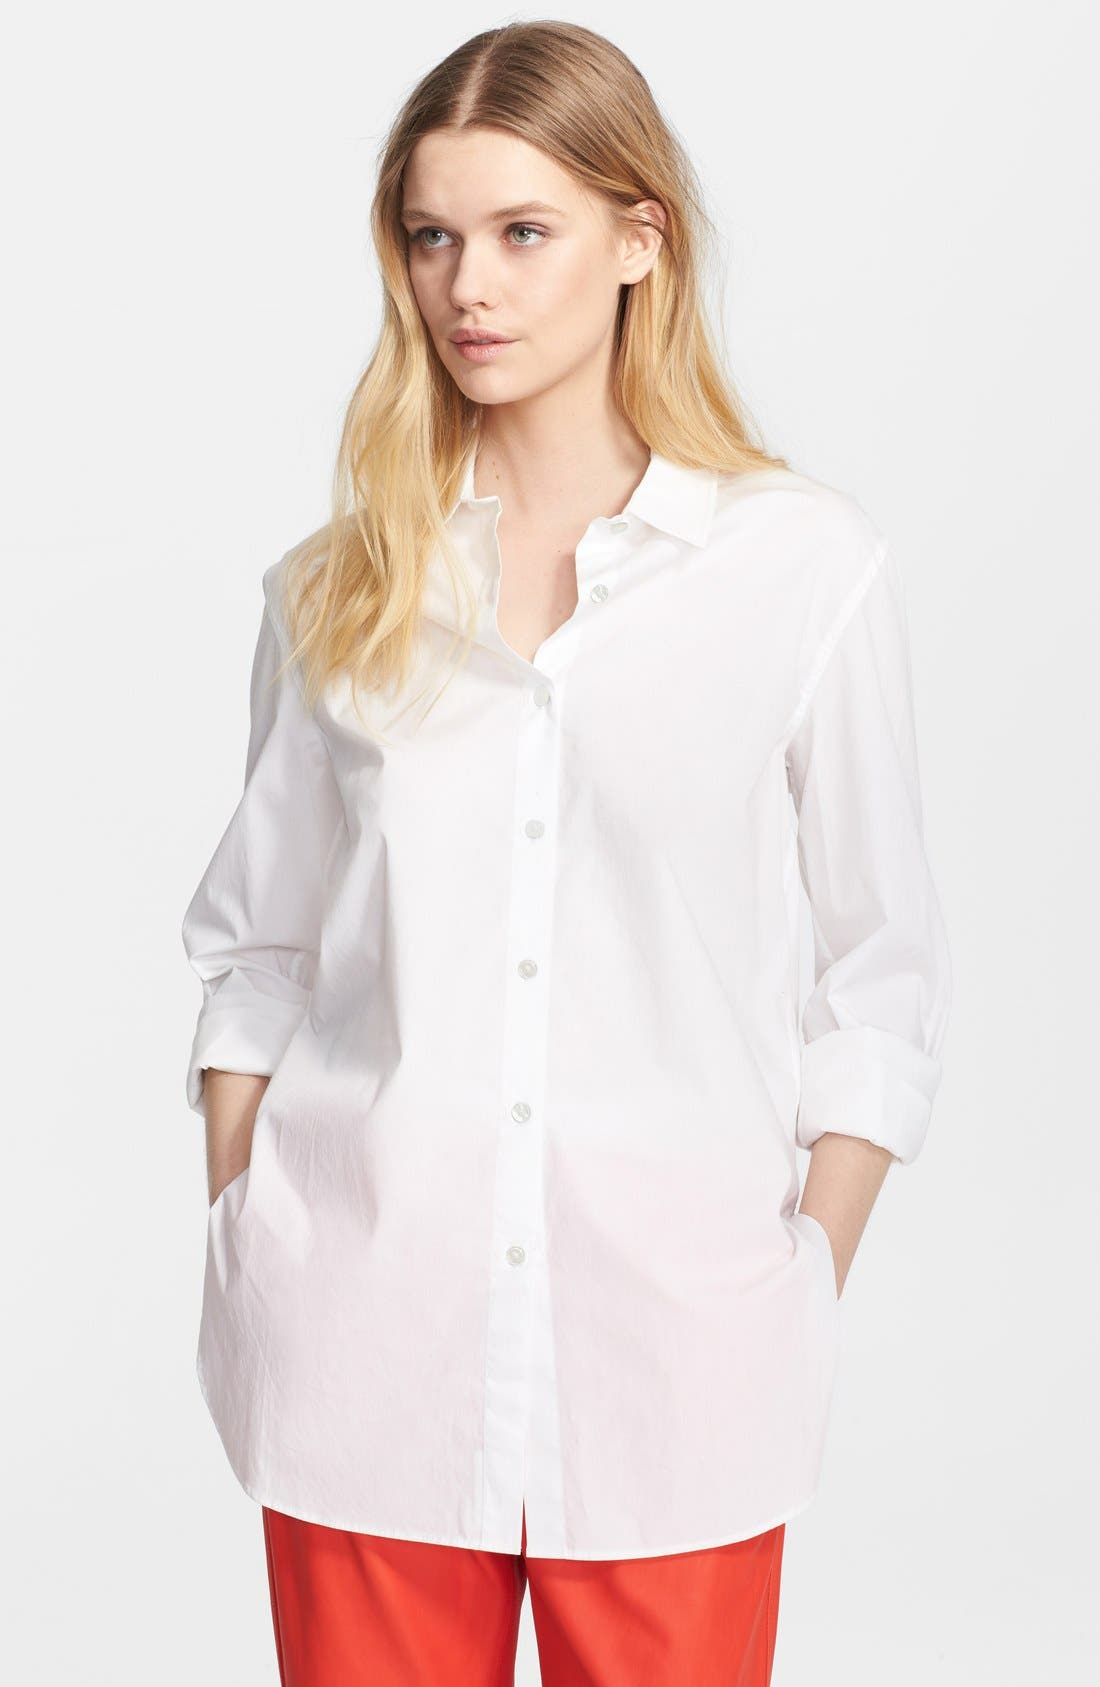 Alternate Image 1 Selected - T by Alexander Wang Poplin Shirt